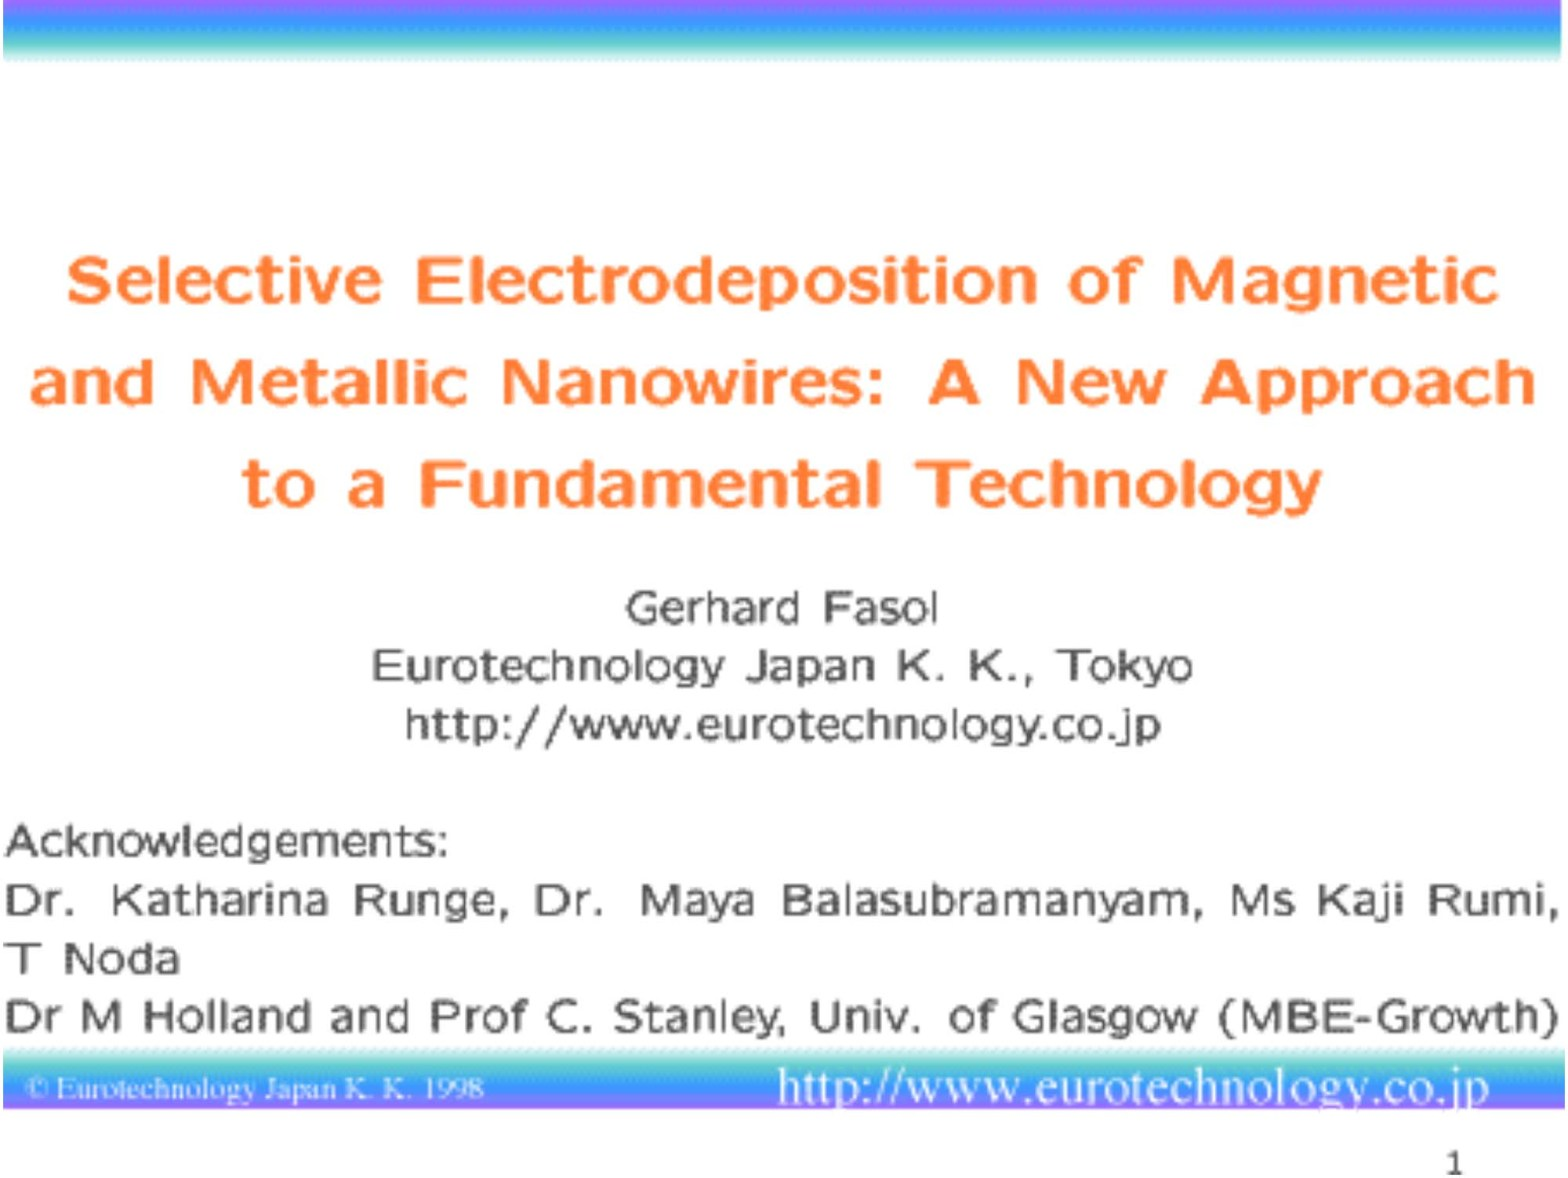 Selective electrodeposition of magnetic and metallic nanowires - A new approach to a fundamental technology